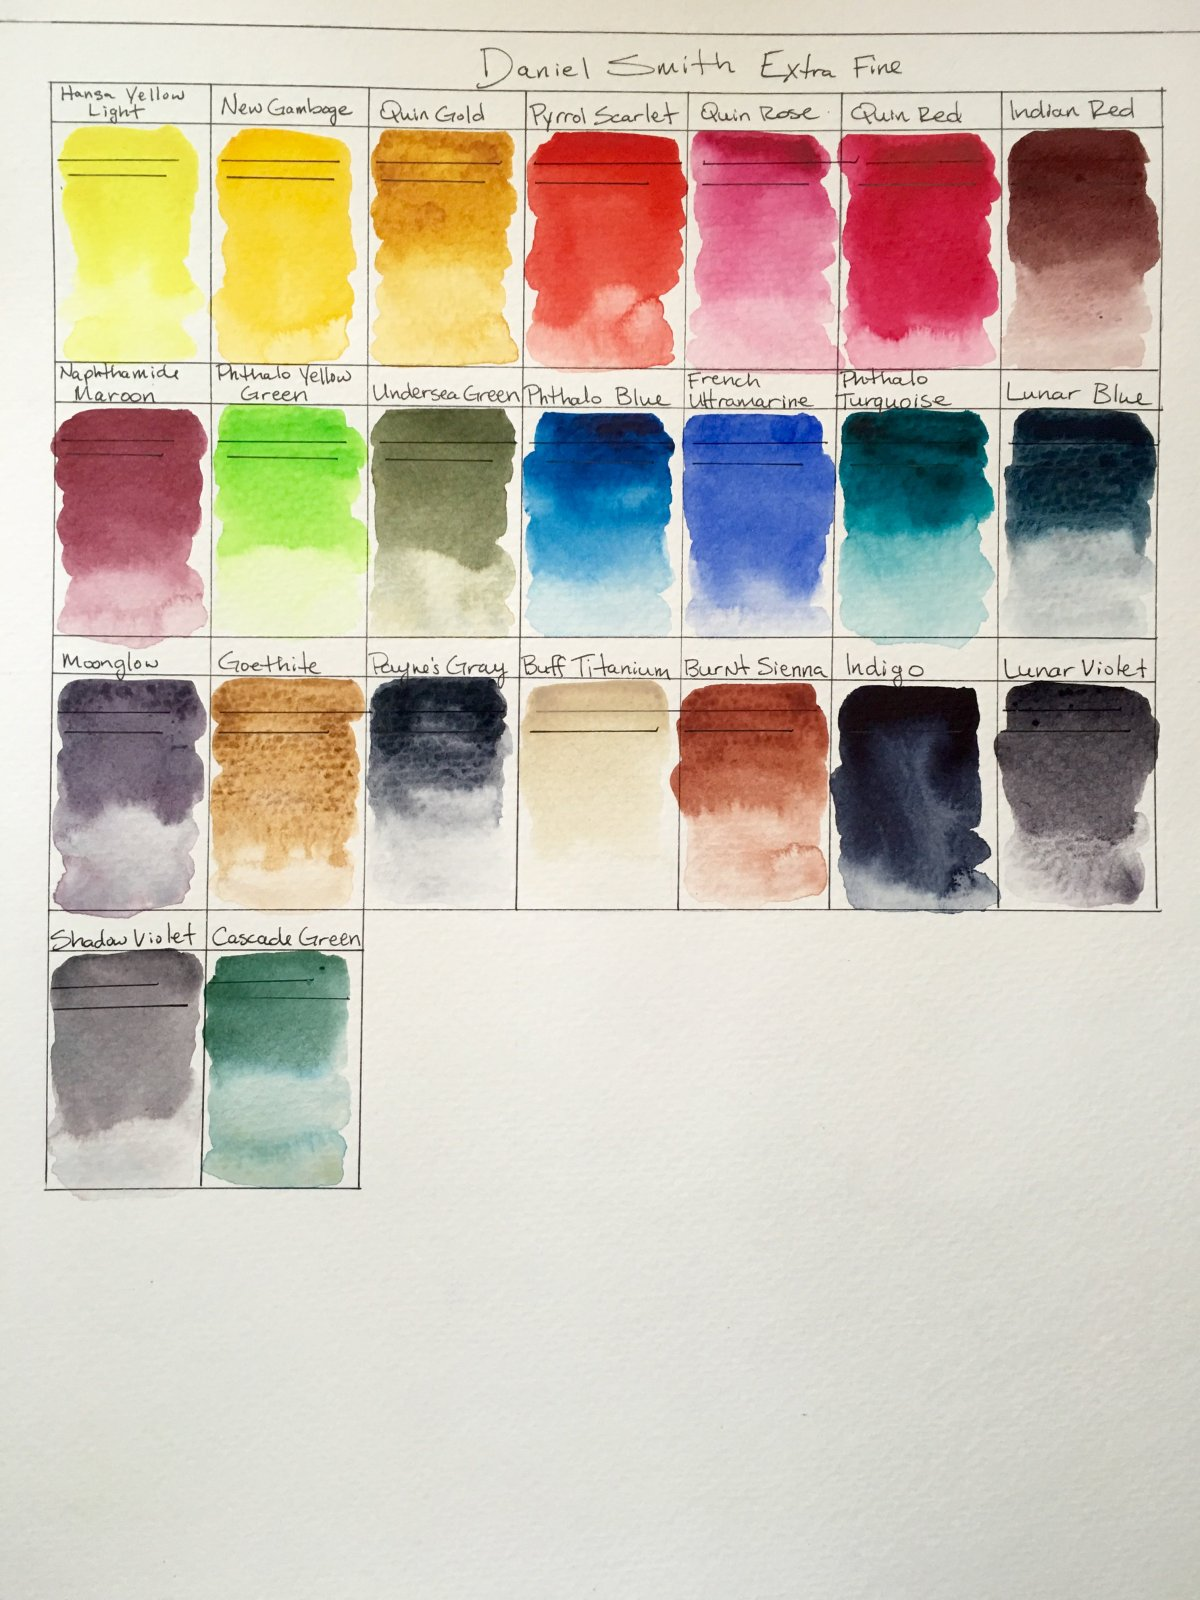 Daniel Smith Extra Fine watercolor paint swatches on Strathmore watercolor paper